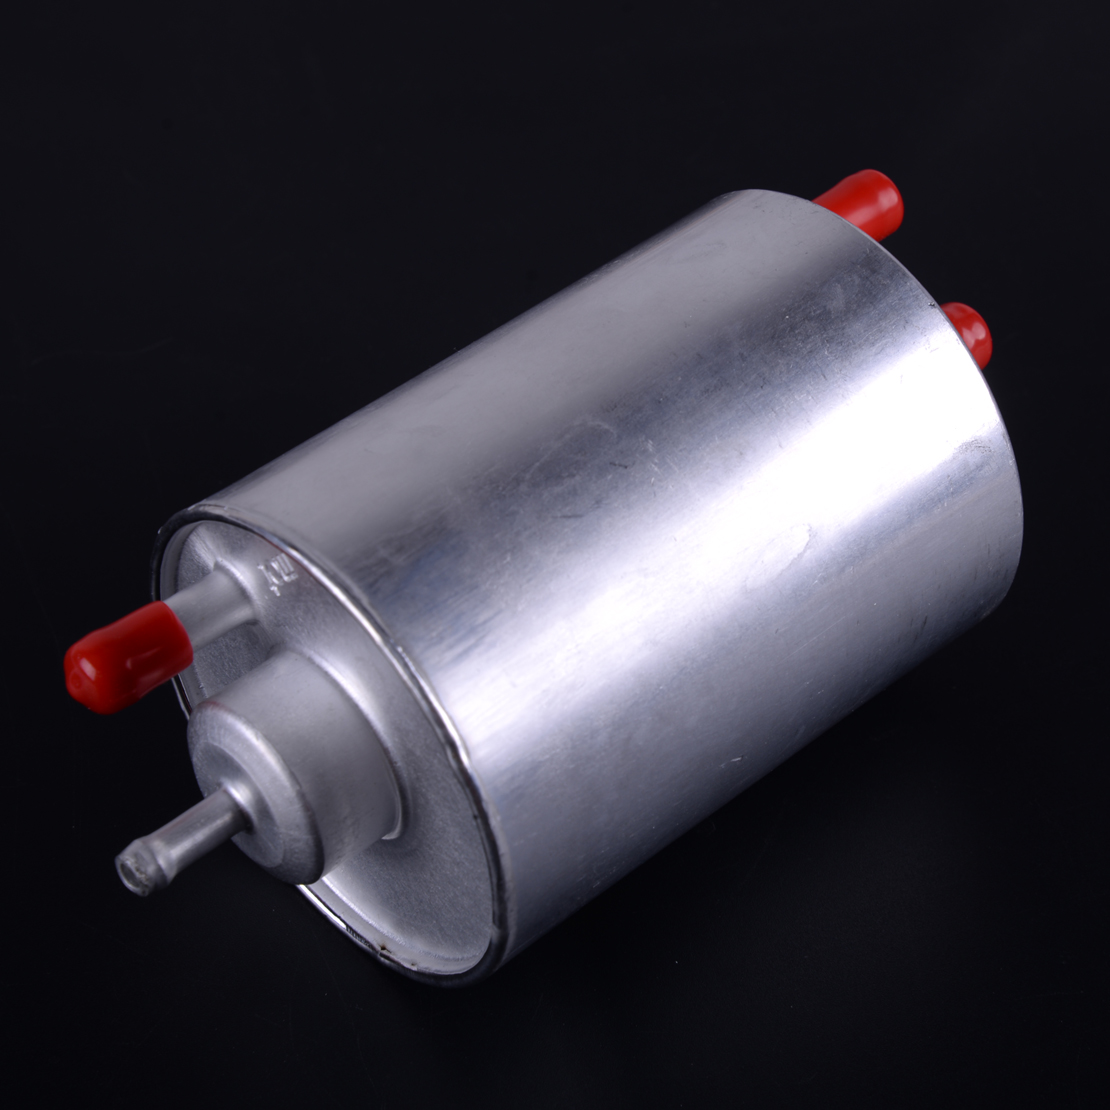 CITALL Fuel Filter Fit For Mercedes Benz C E S Class W202 S202 <font><b>W210</b></font> S210 W220 002 477 30 01 Auto <font><b>Parts</b></font> image